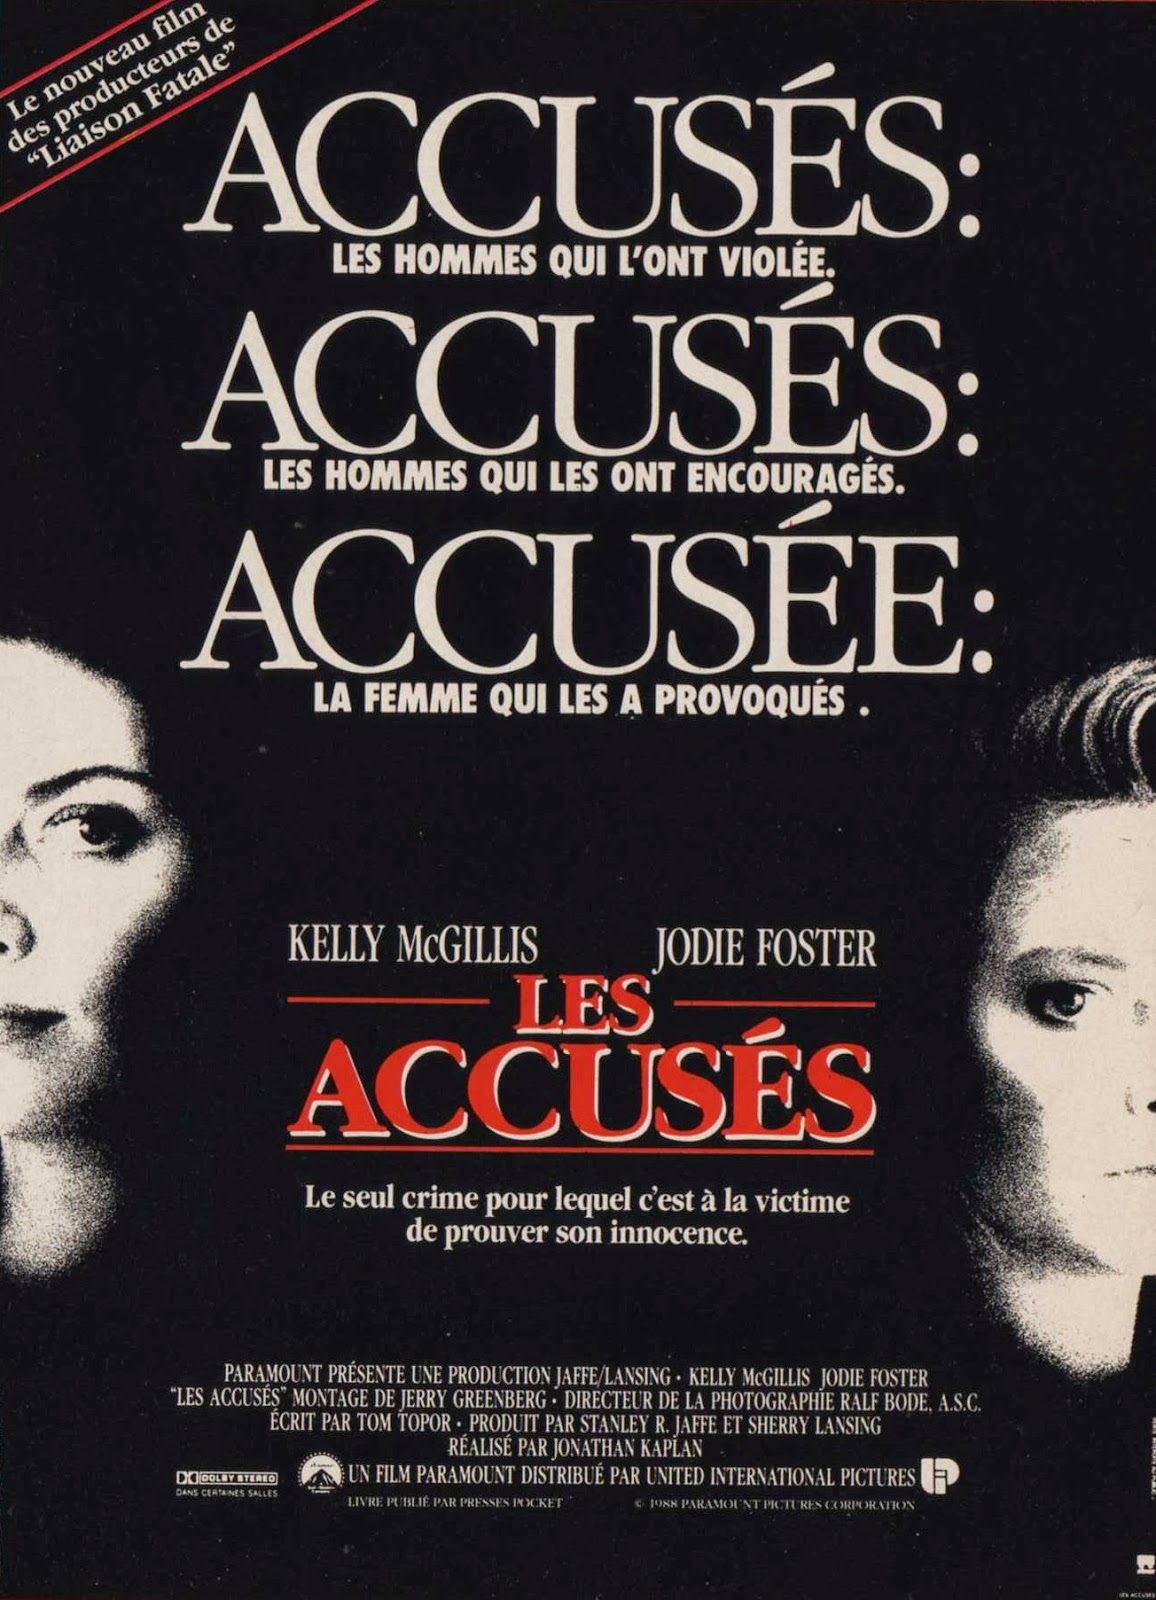 watch the accused watch the accused full movie video  discreet charms obscure objects les accuses french poster click for a larger image best images about the accused kelly mcgillis